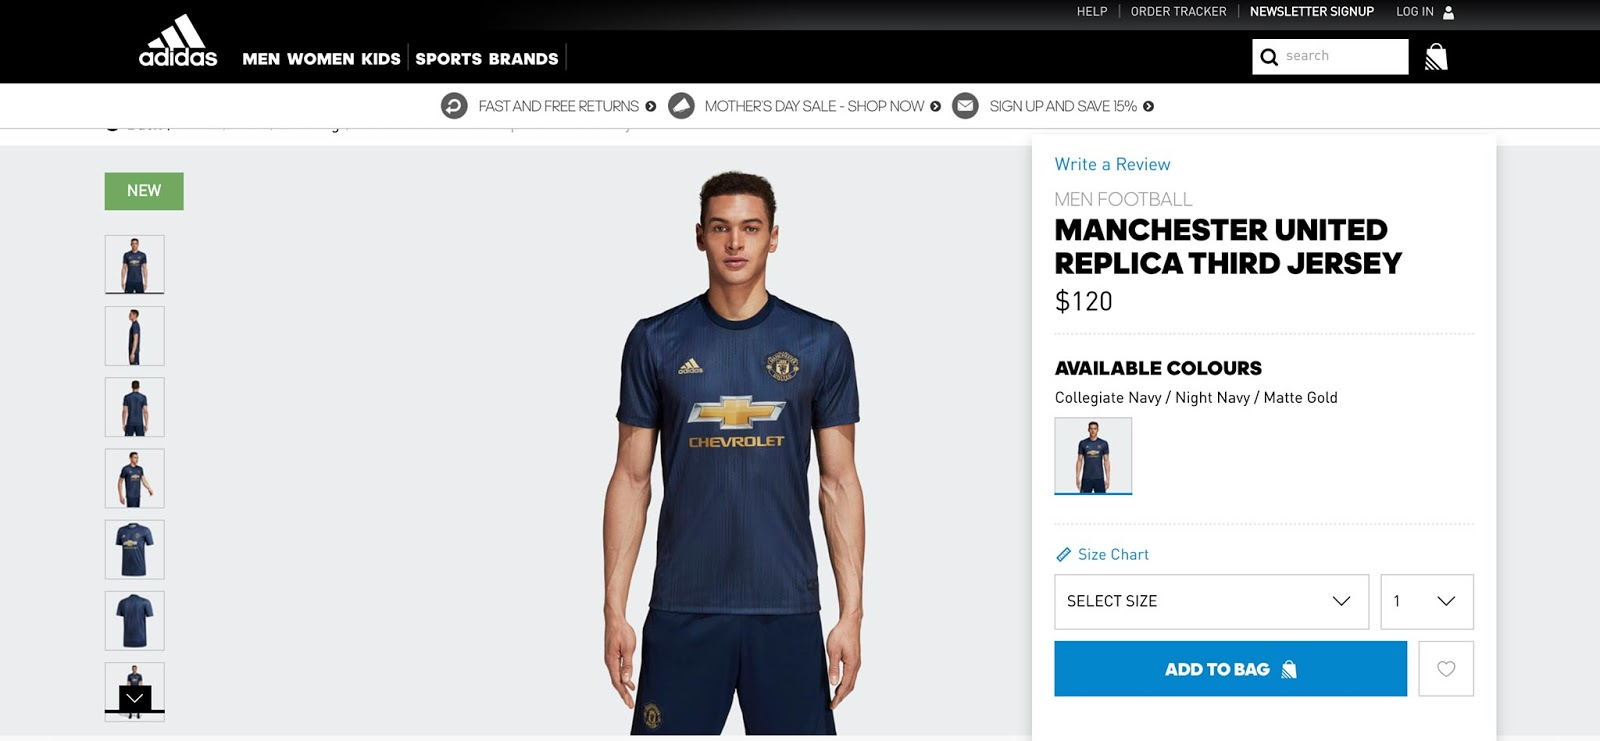 a178da4ad69 Update  We have received information about the launch date of the stunning  new Adidas Man Utd 2018-2019 third kit. Unlike last year